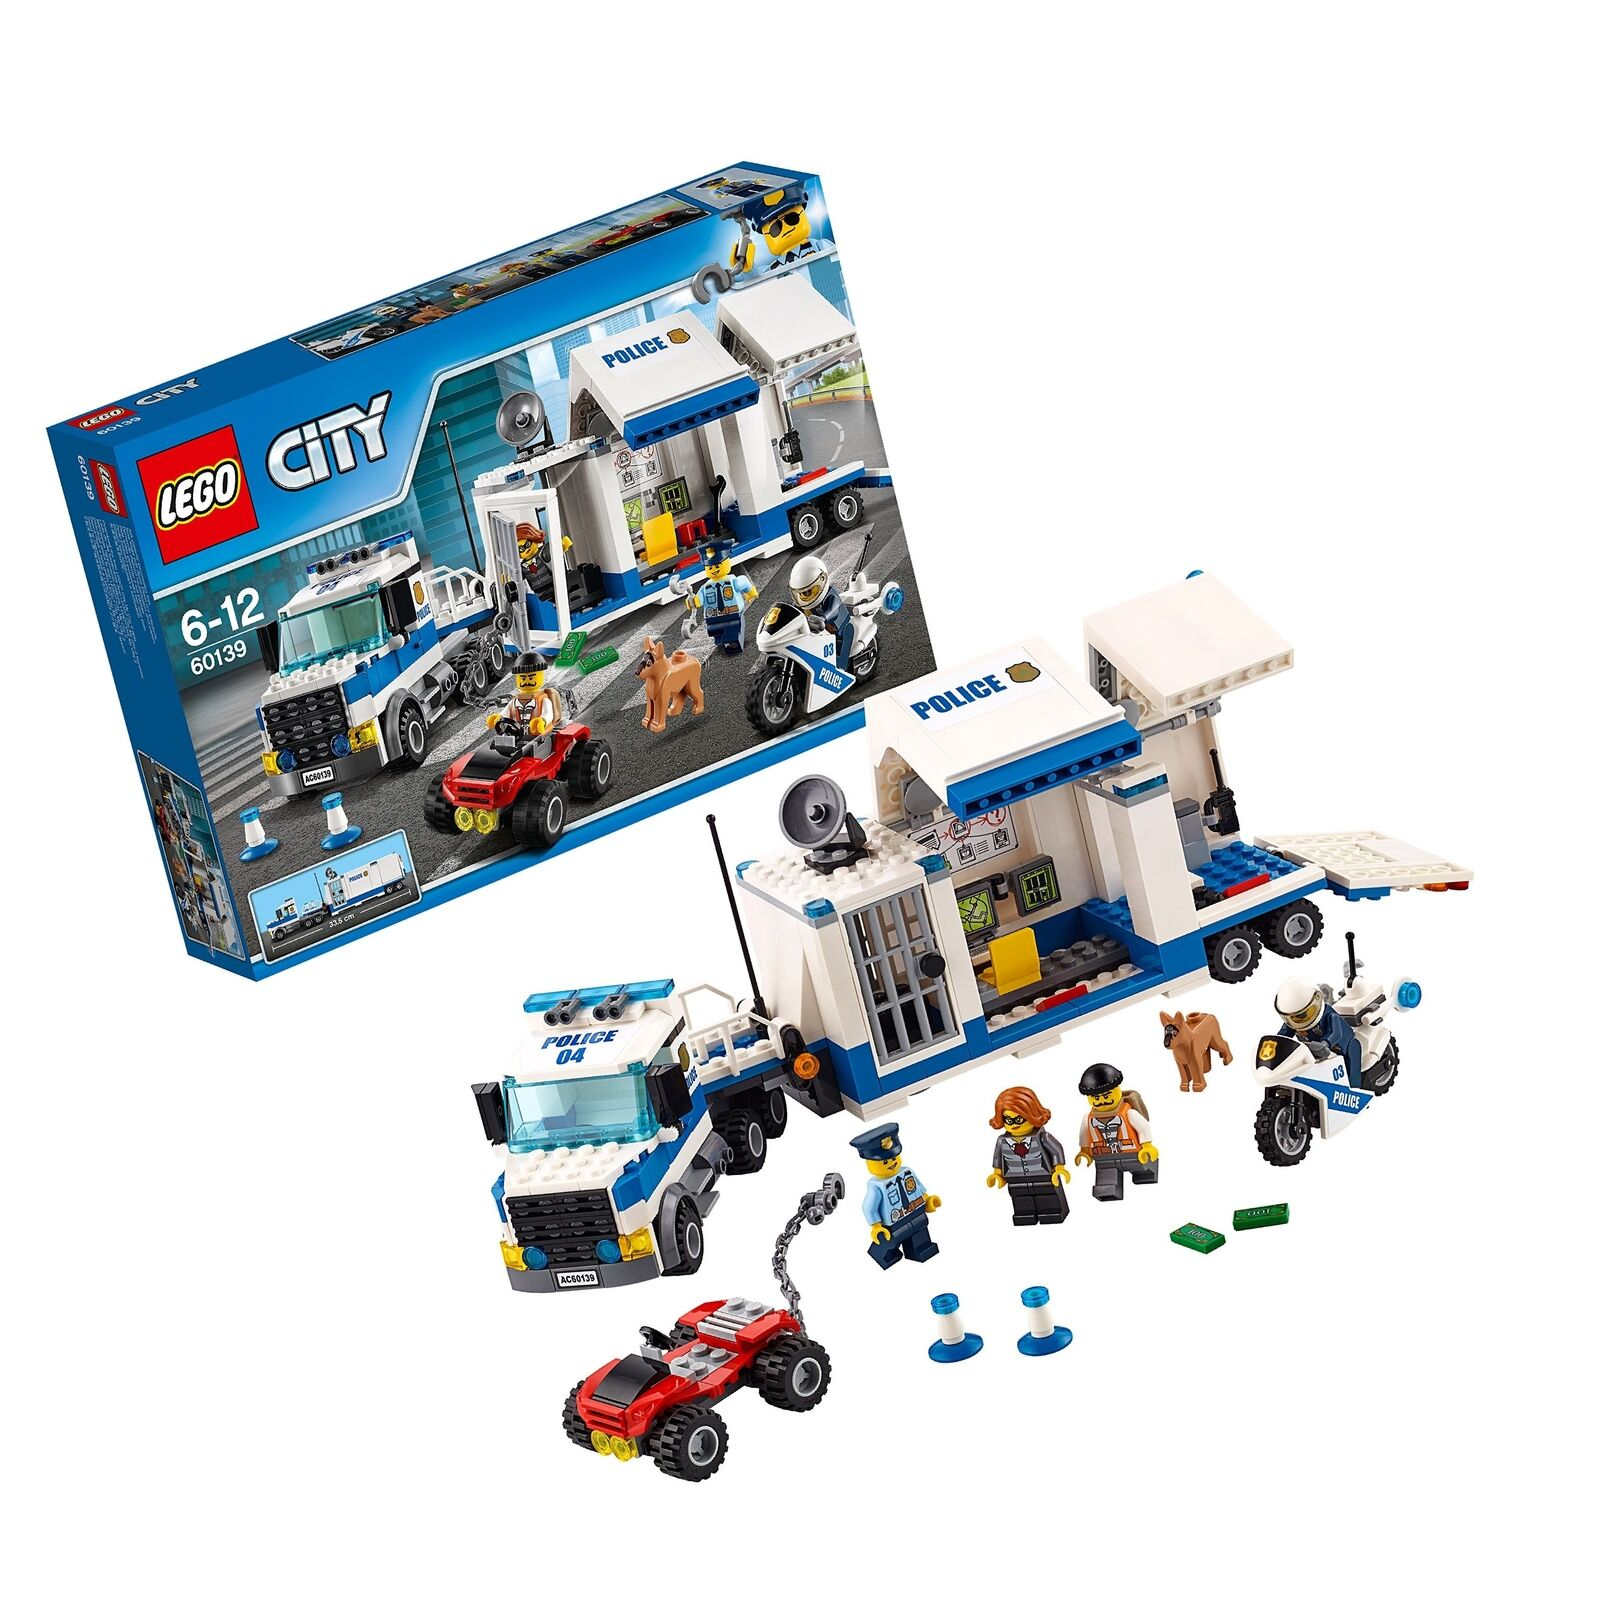 LEGO 60139 CITY Police mobile di Command Center Building Set, Giocattolo Camion e Moto.